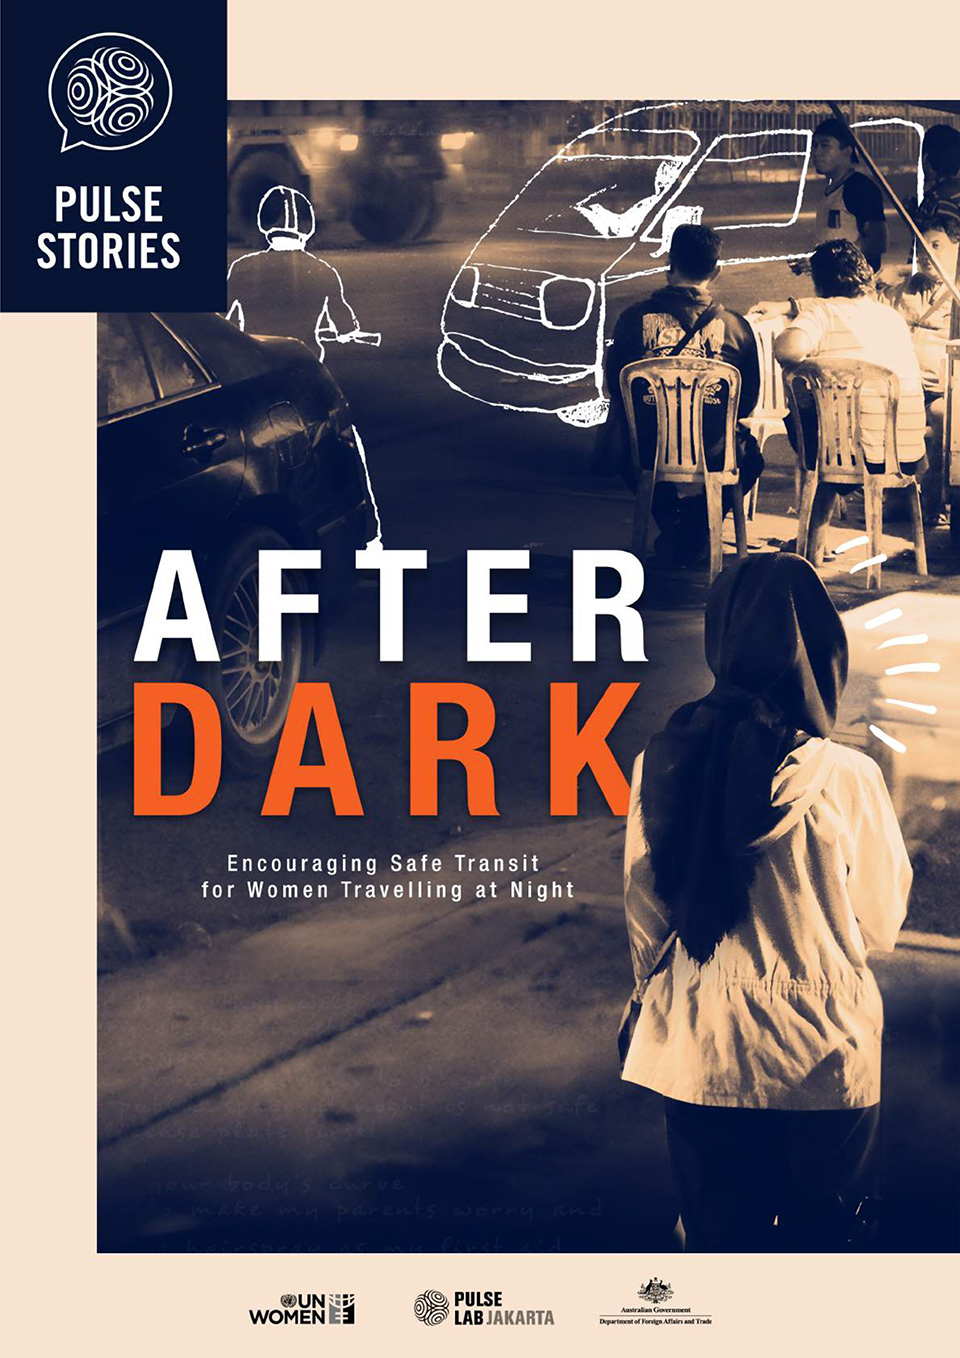 After Dark: Encouraging Safe Transit for Women Travelling at Night